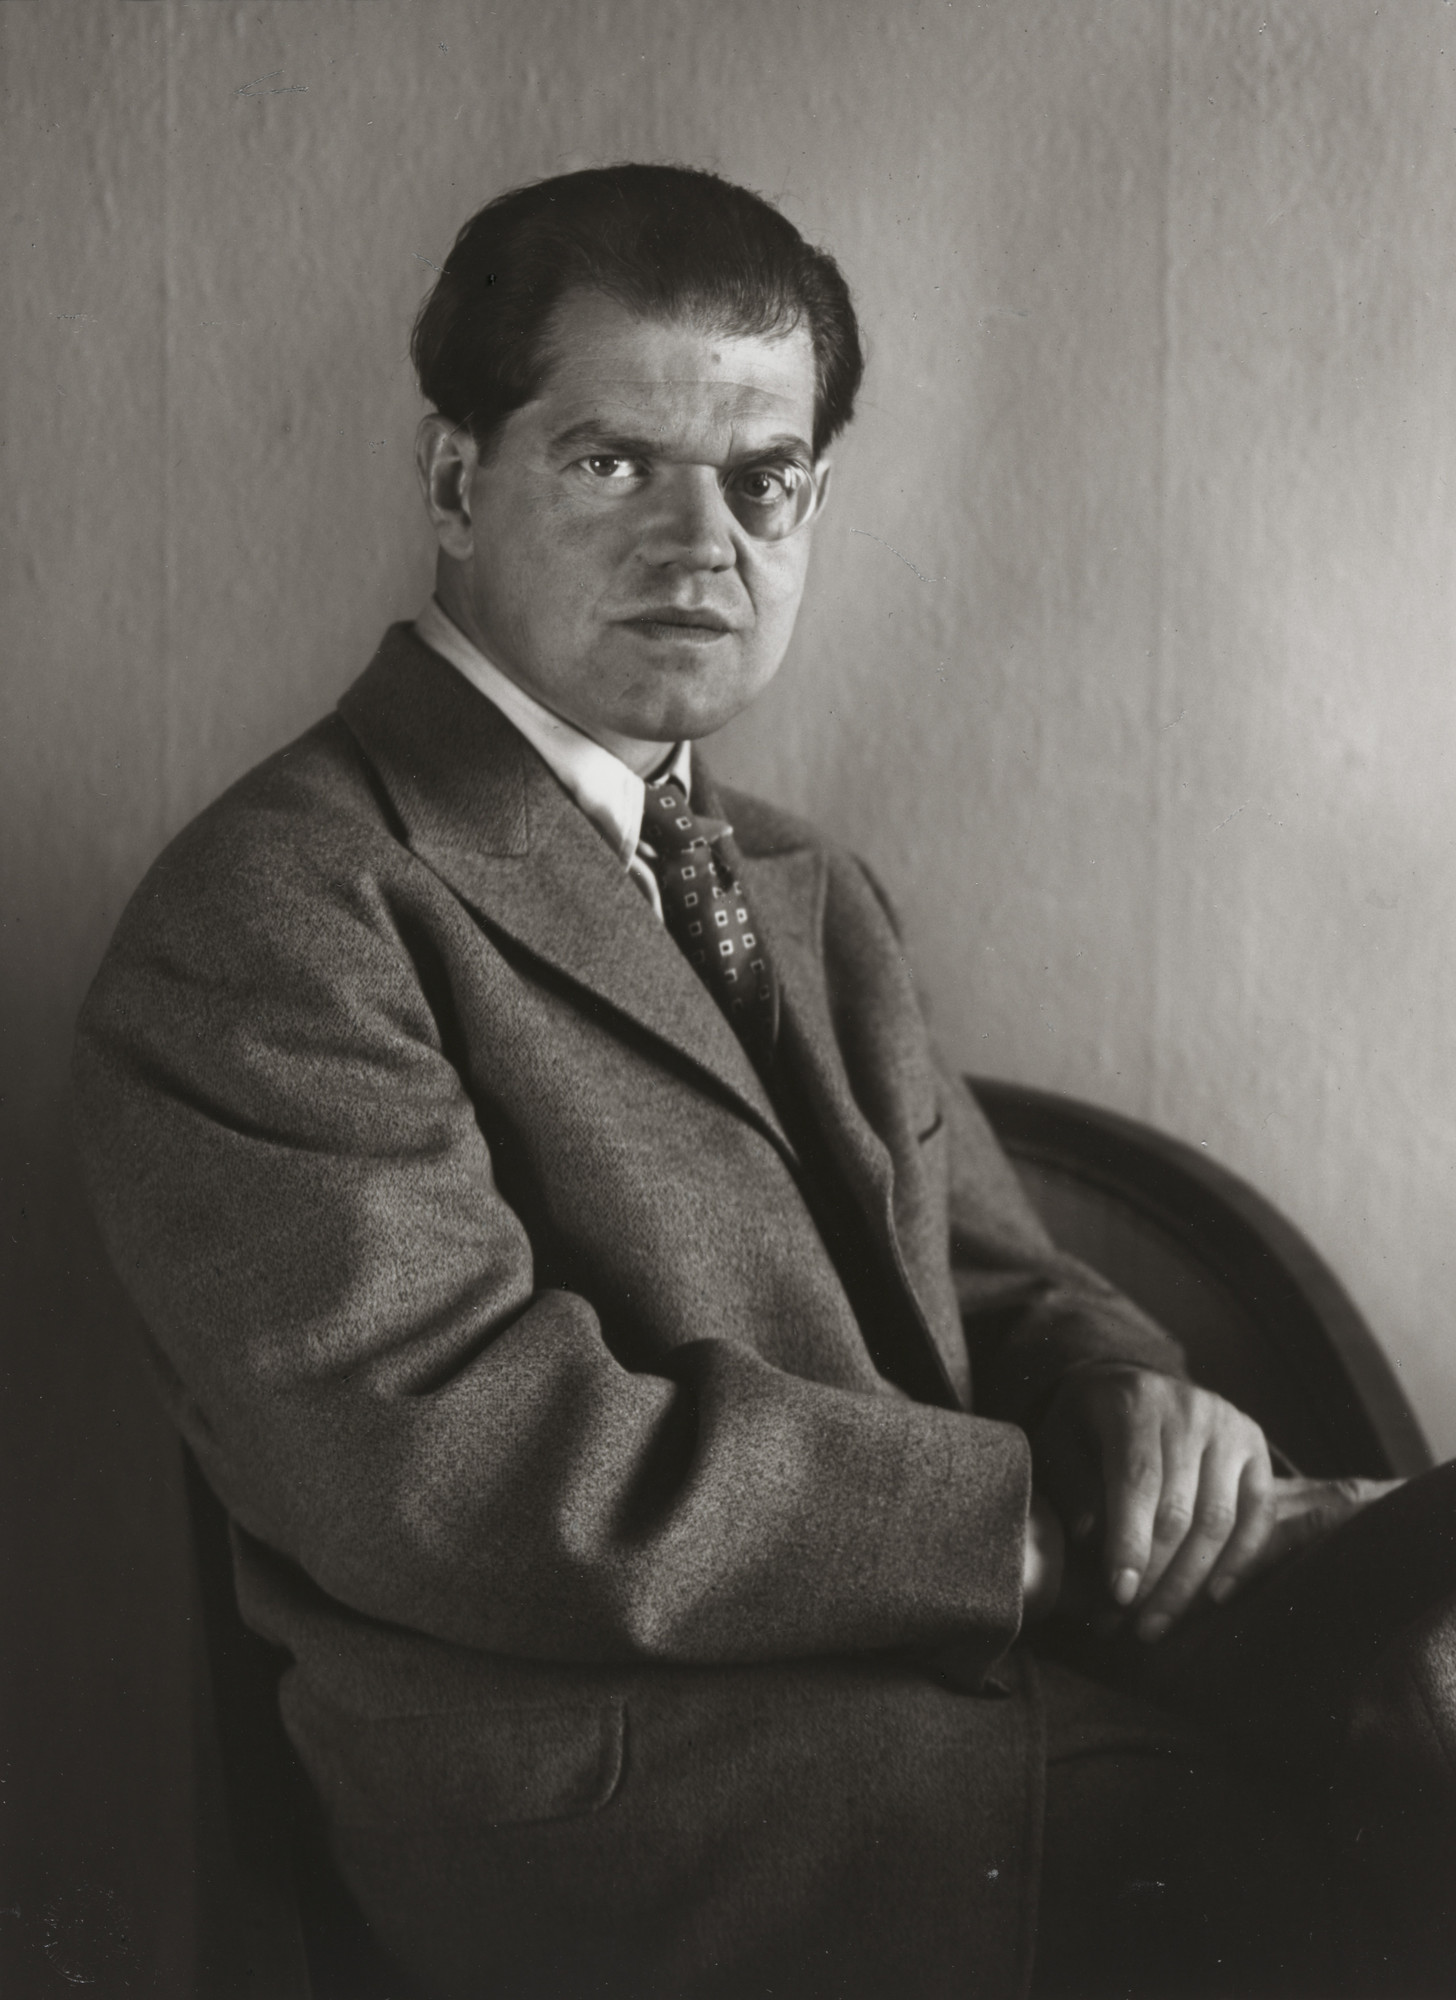 August Sander. Inventor and Dadaist [Raoul Hausmann]. 1929